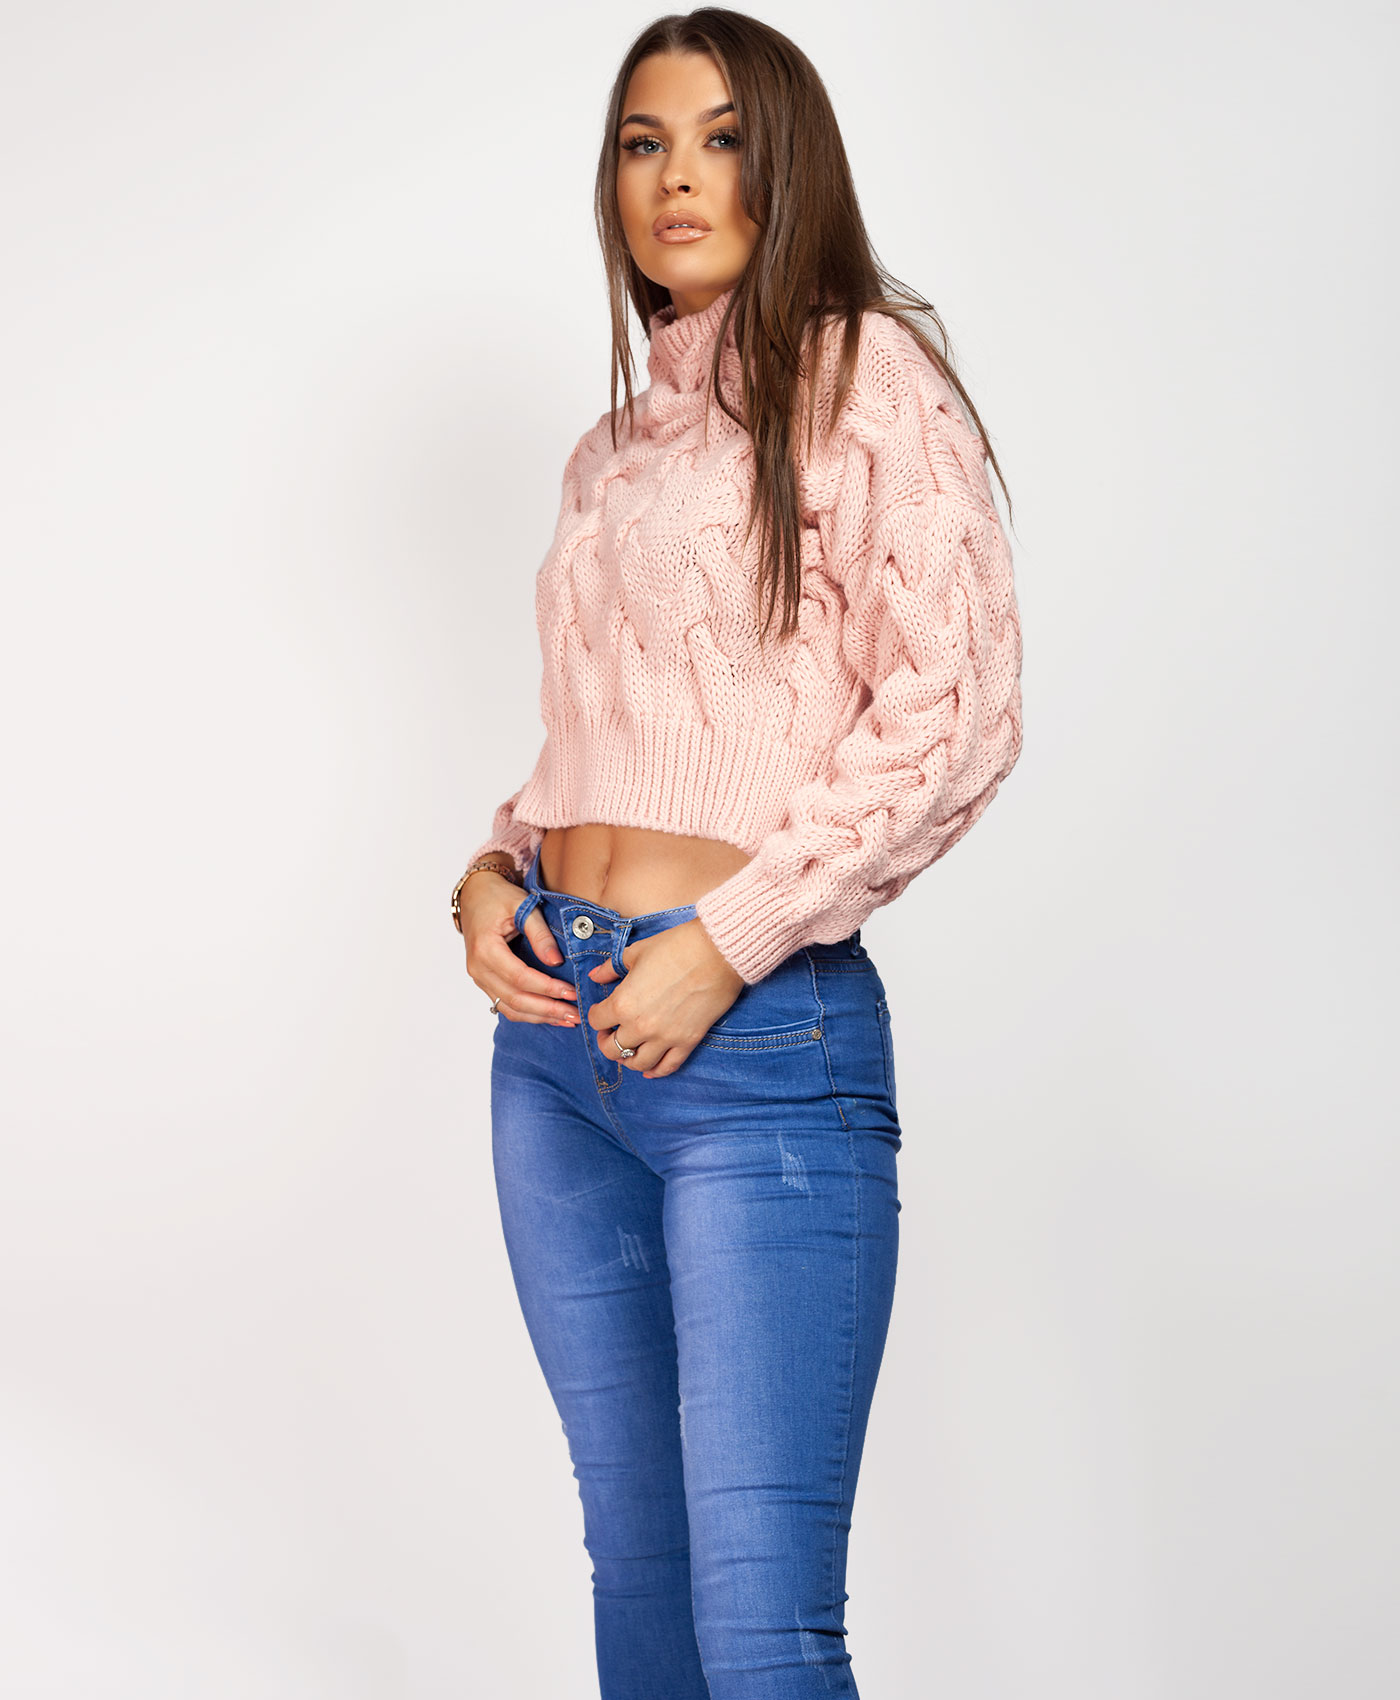 Womens-Ladies-Cable-Knitted-High-Neck-Cropped-Top-Pullover-Sweater-Chunky-Jumper thumbnail 35